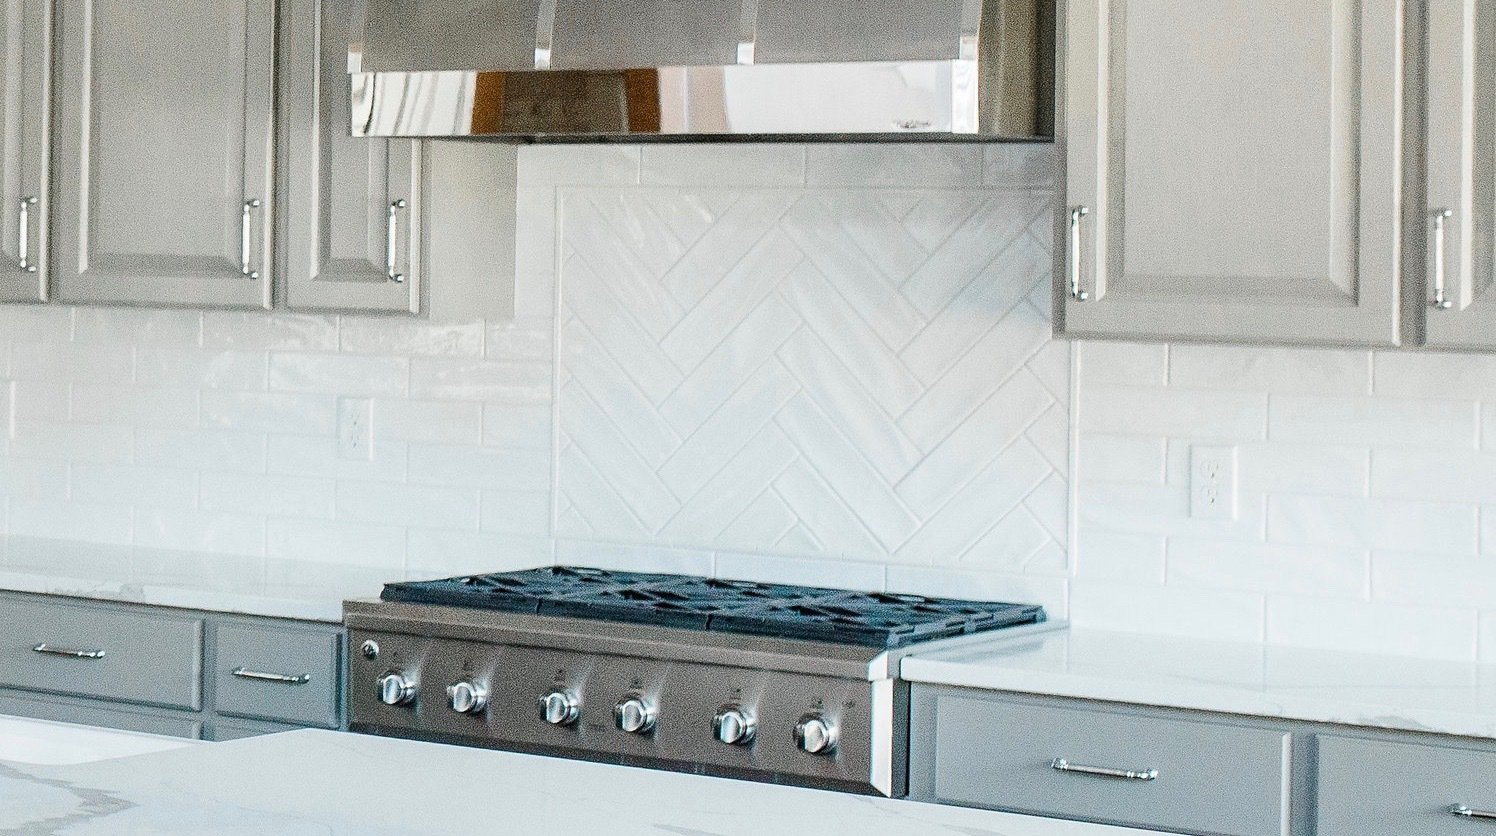 Kitchen, Cooktops, Wood Cabinet, Range, and Engineered Quartz Counter Kitchen  Hole in One